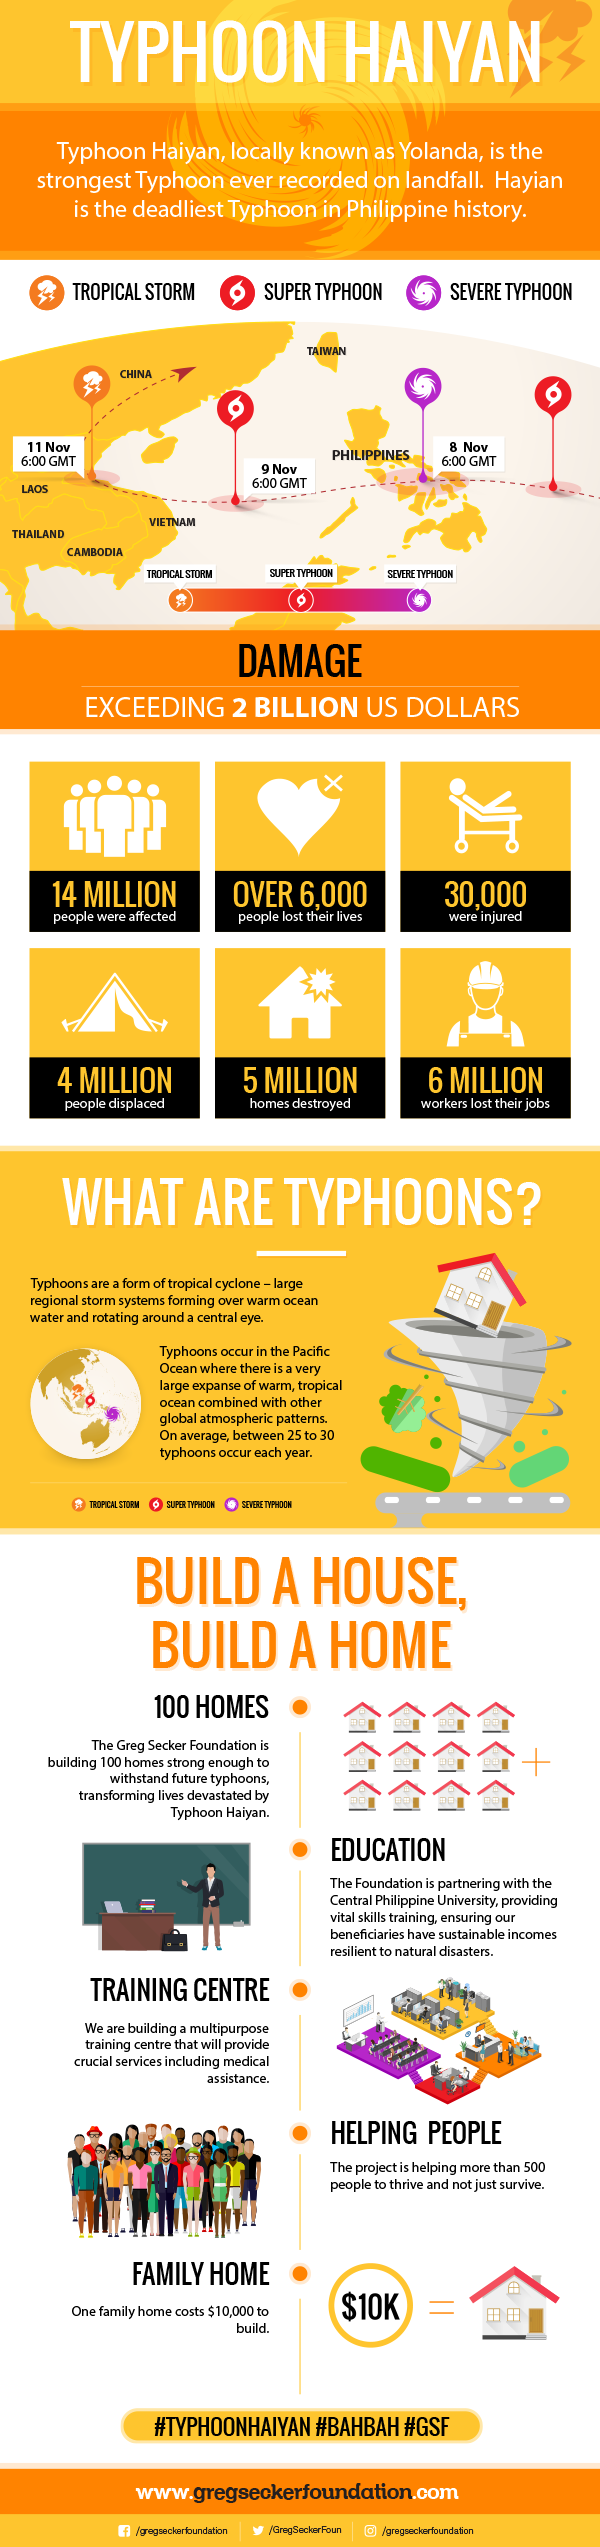 Facts about typhoon Haiyan